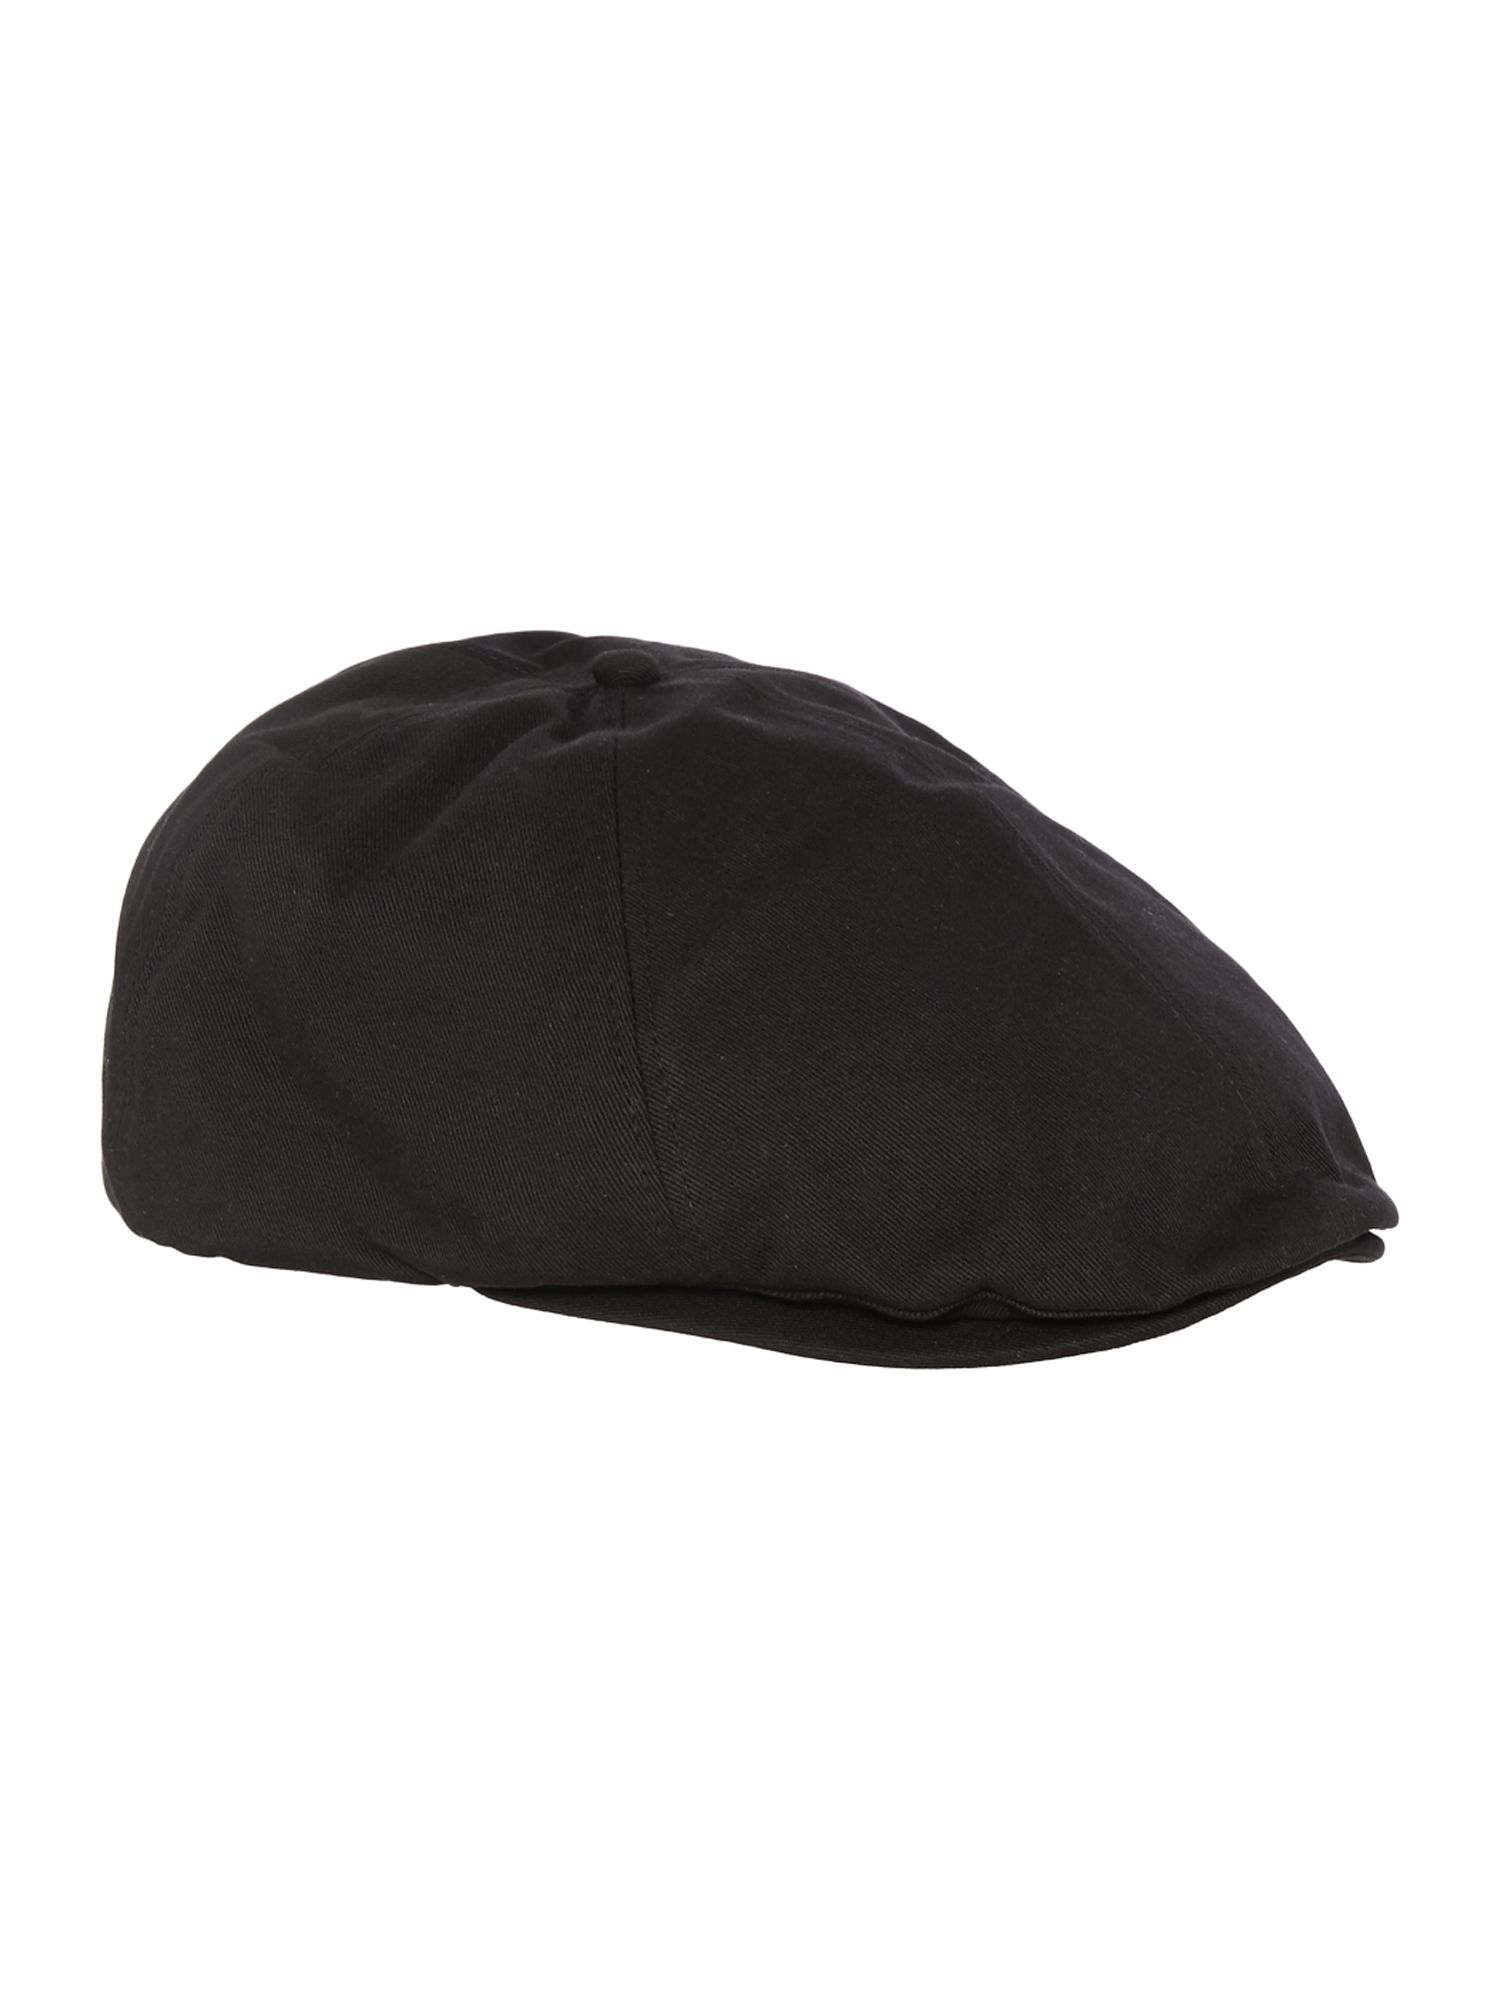 fred perry flat cap in black for men lyst. Black Bedroom Furniture Sets. Home Design Ideas